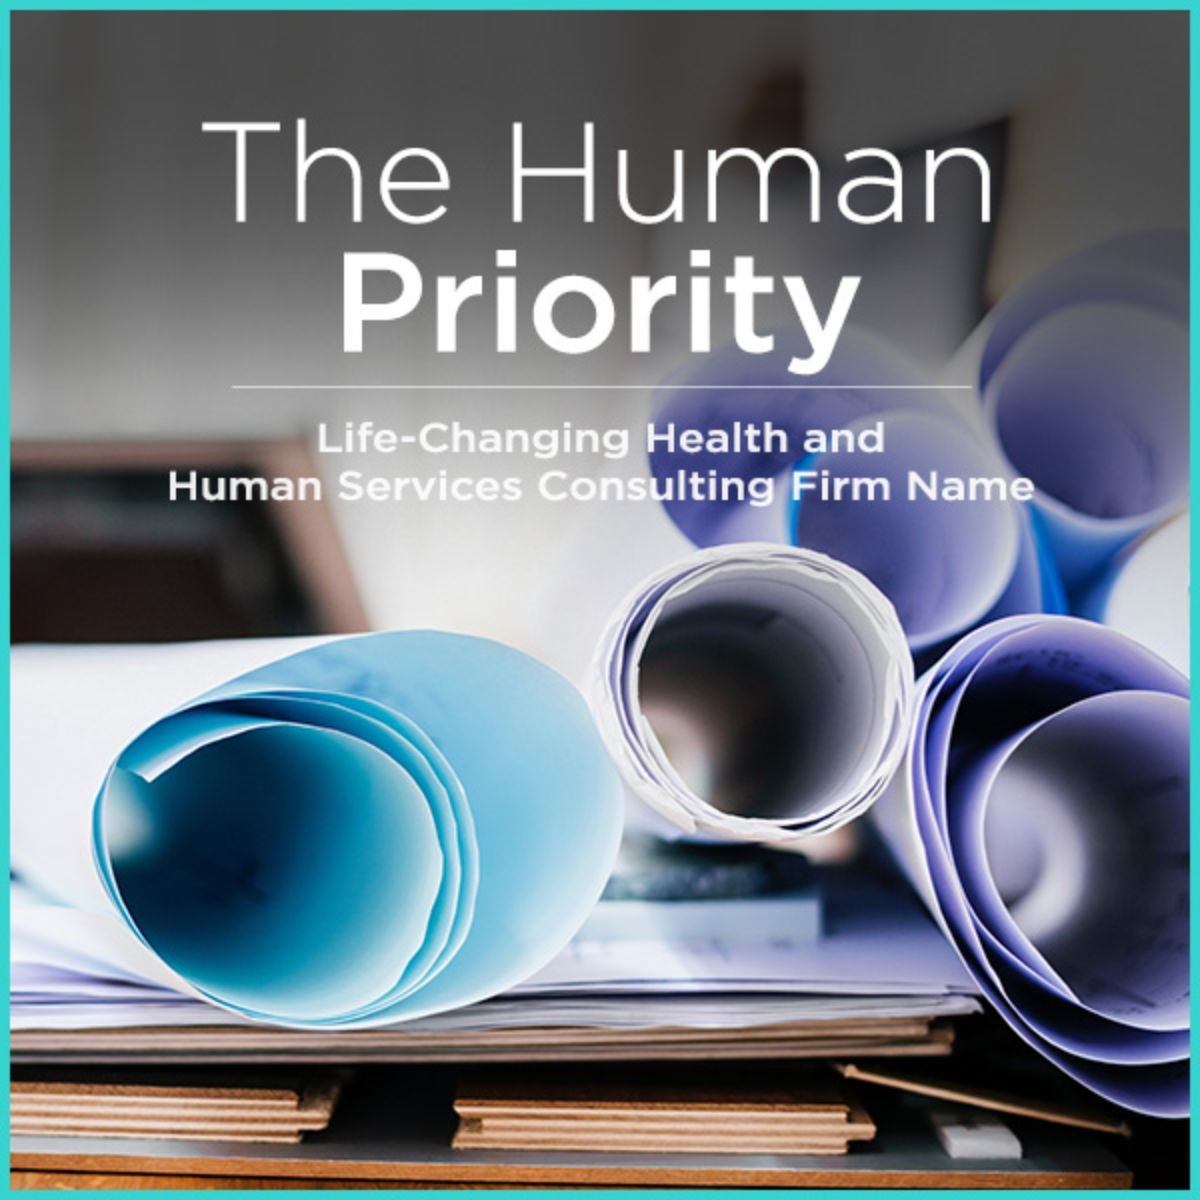 TheHumanPriority